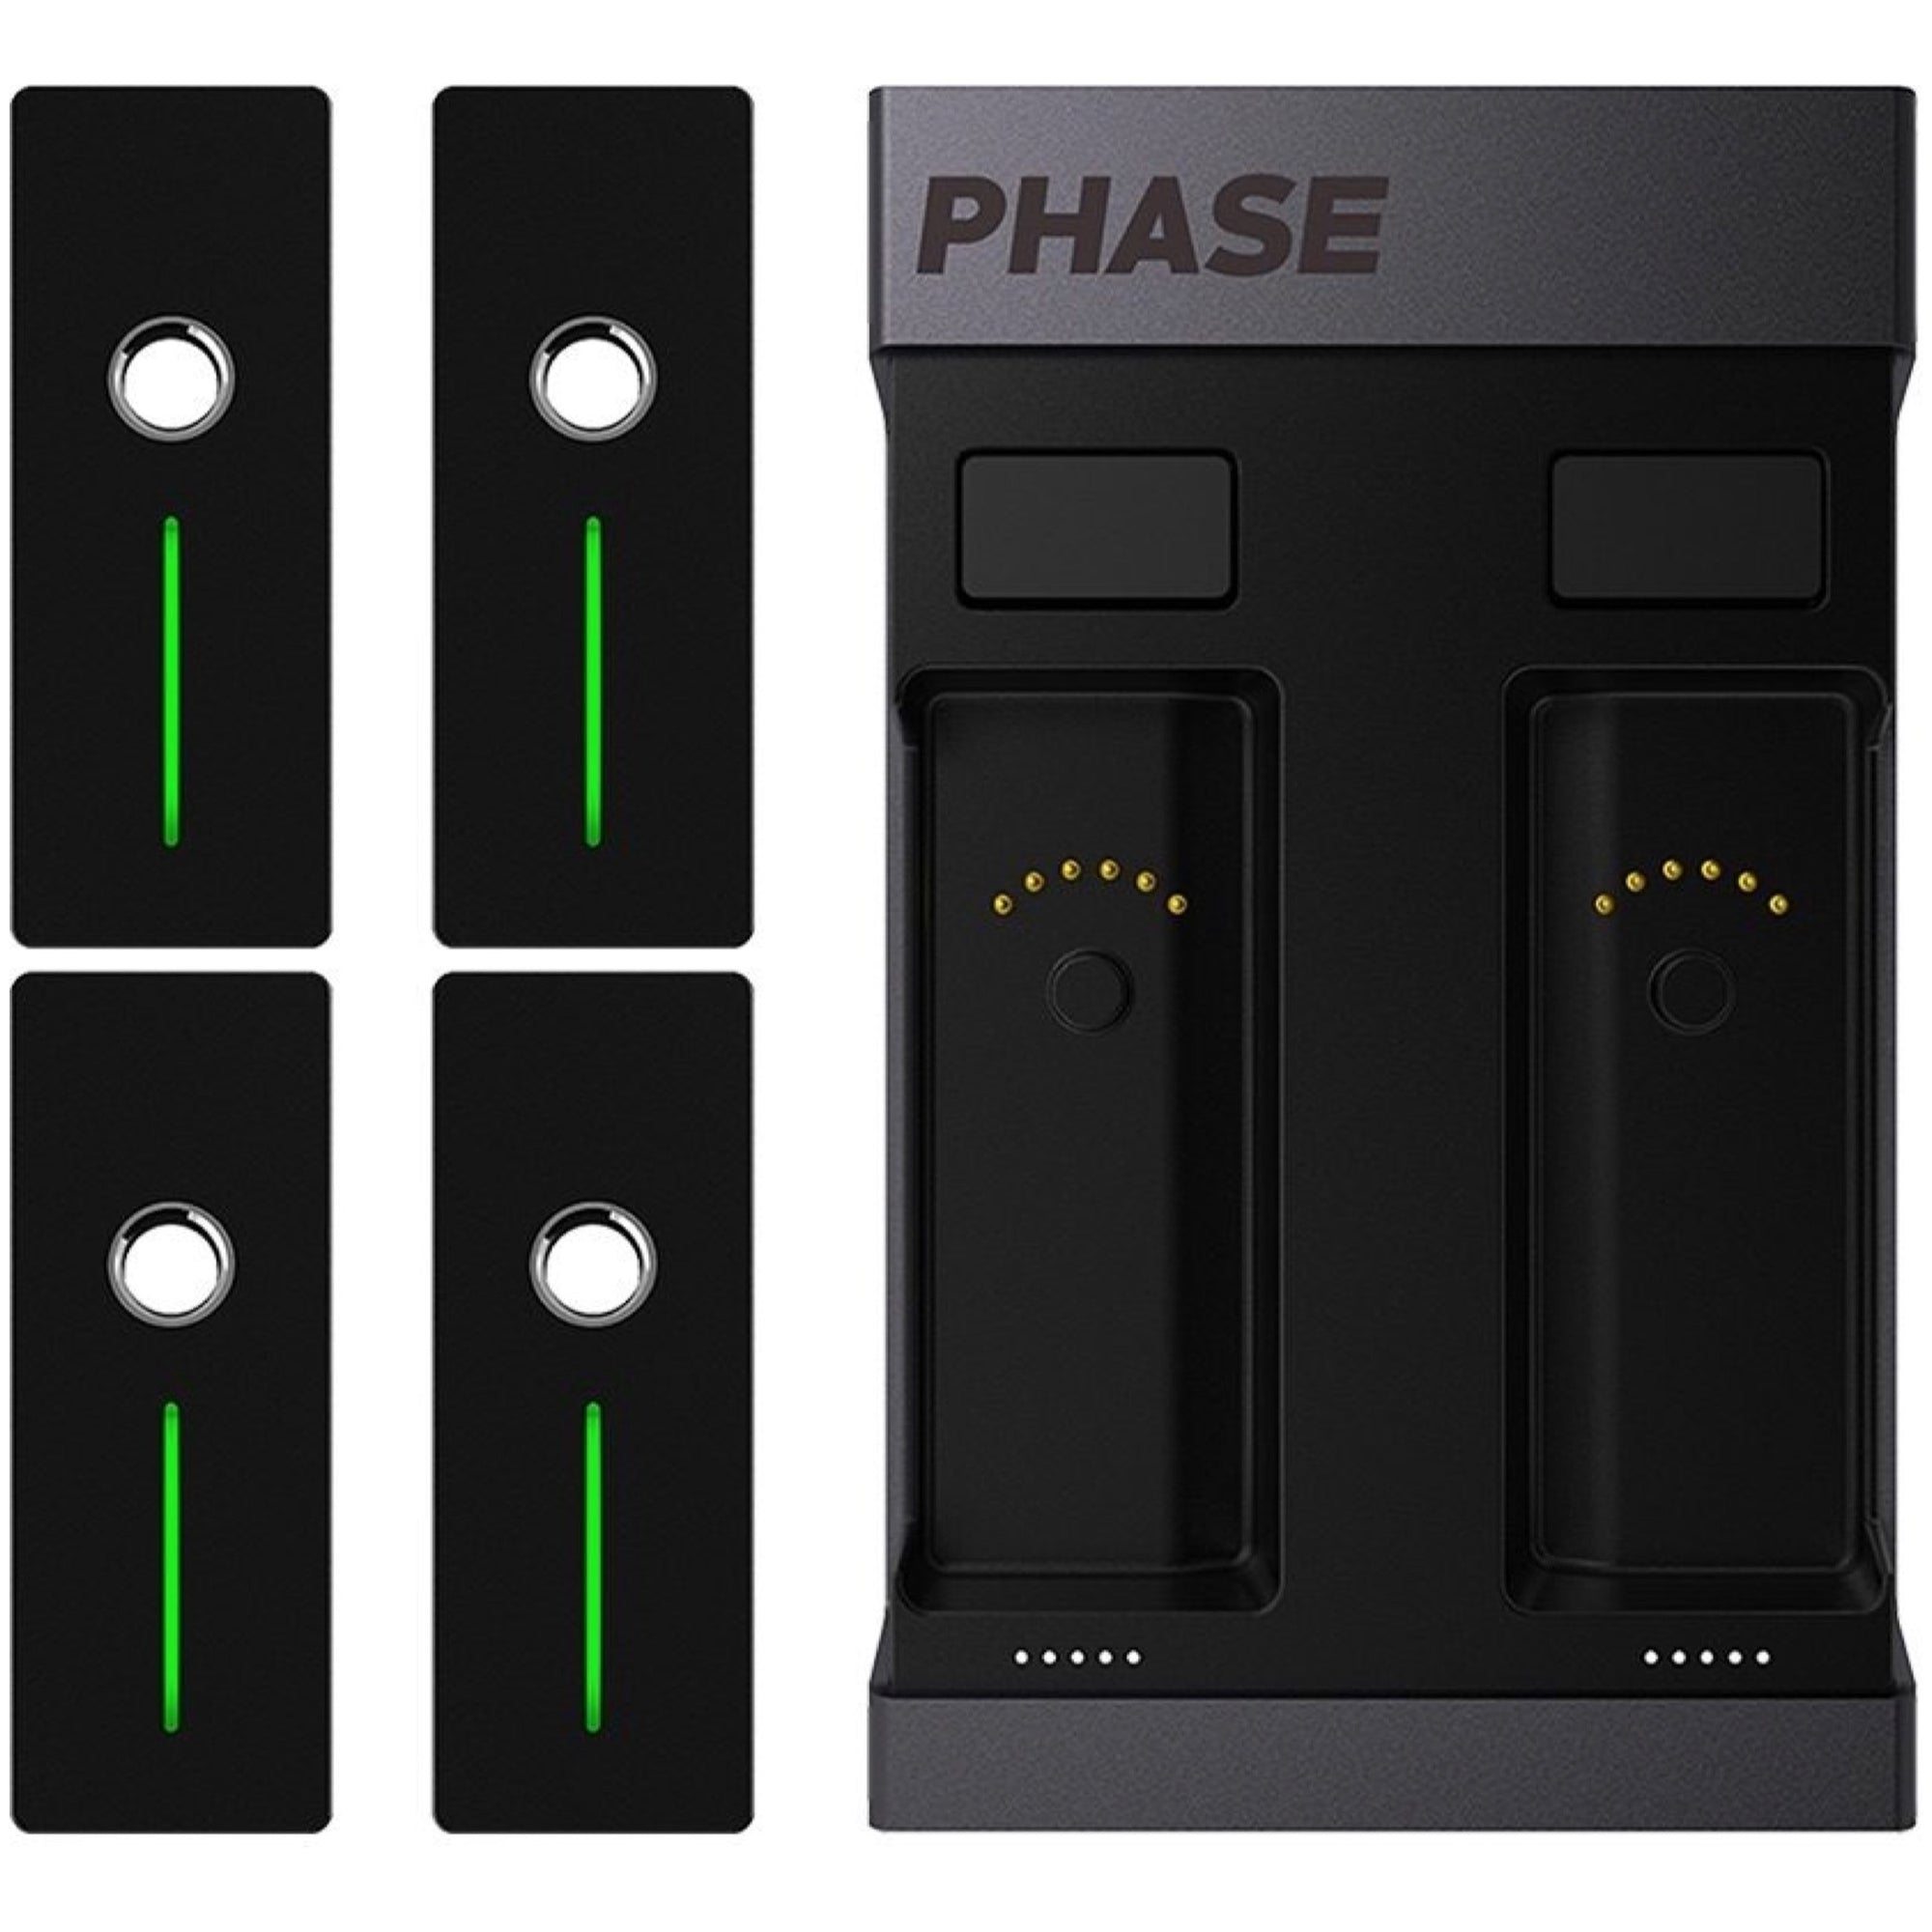 MWM Phase Ultimate Wireless DVS System